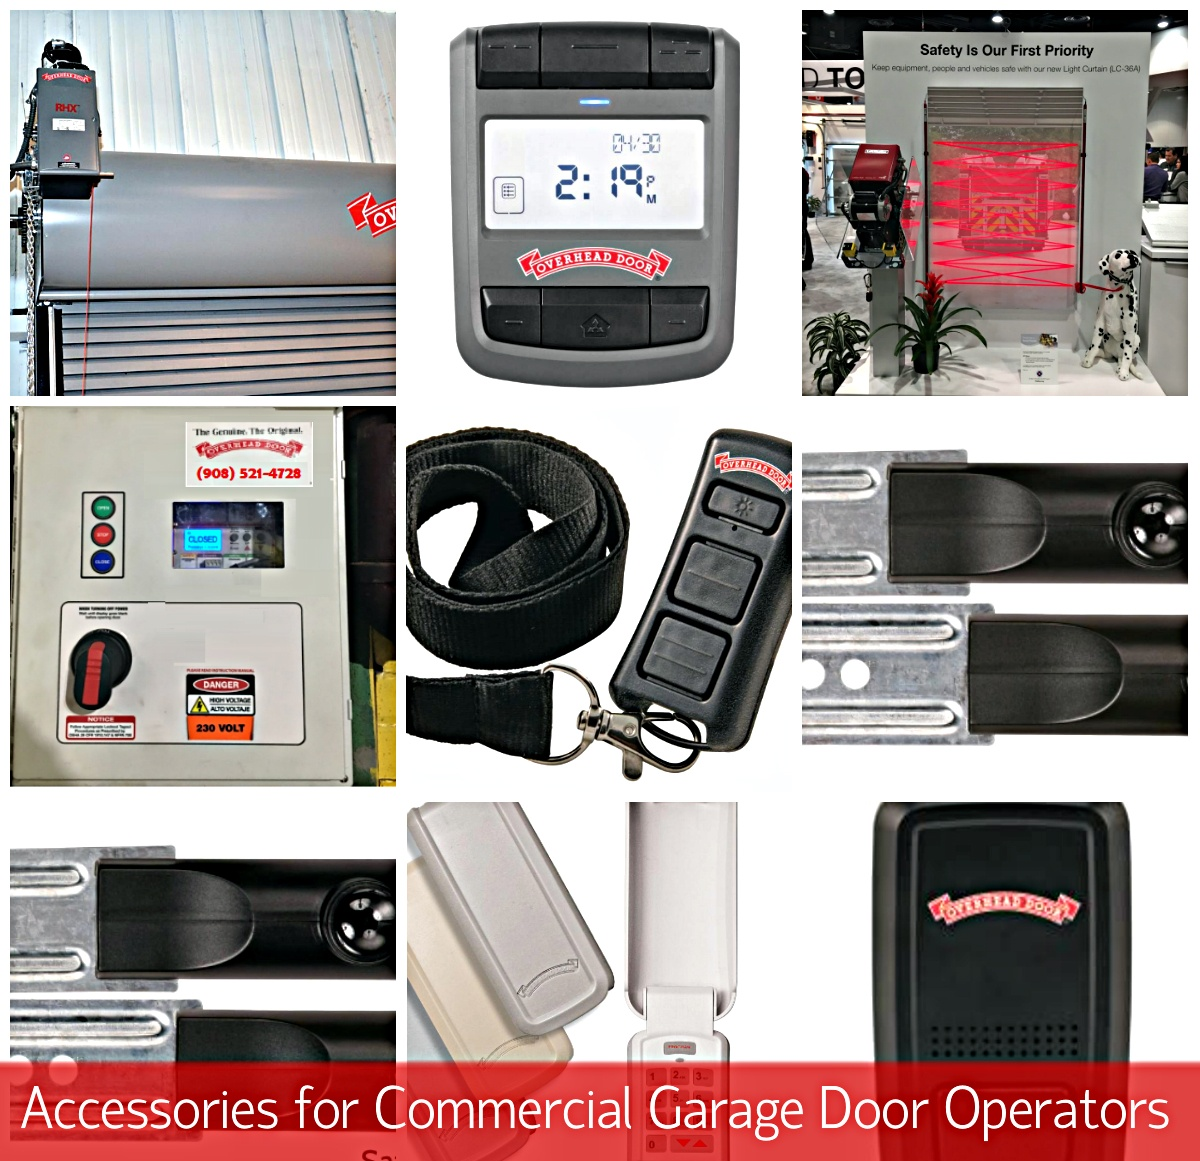 Accessories for Commercial Garage Door Operators